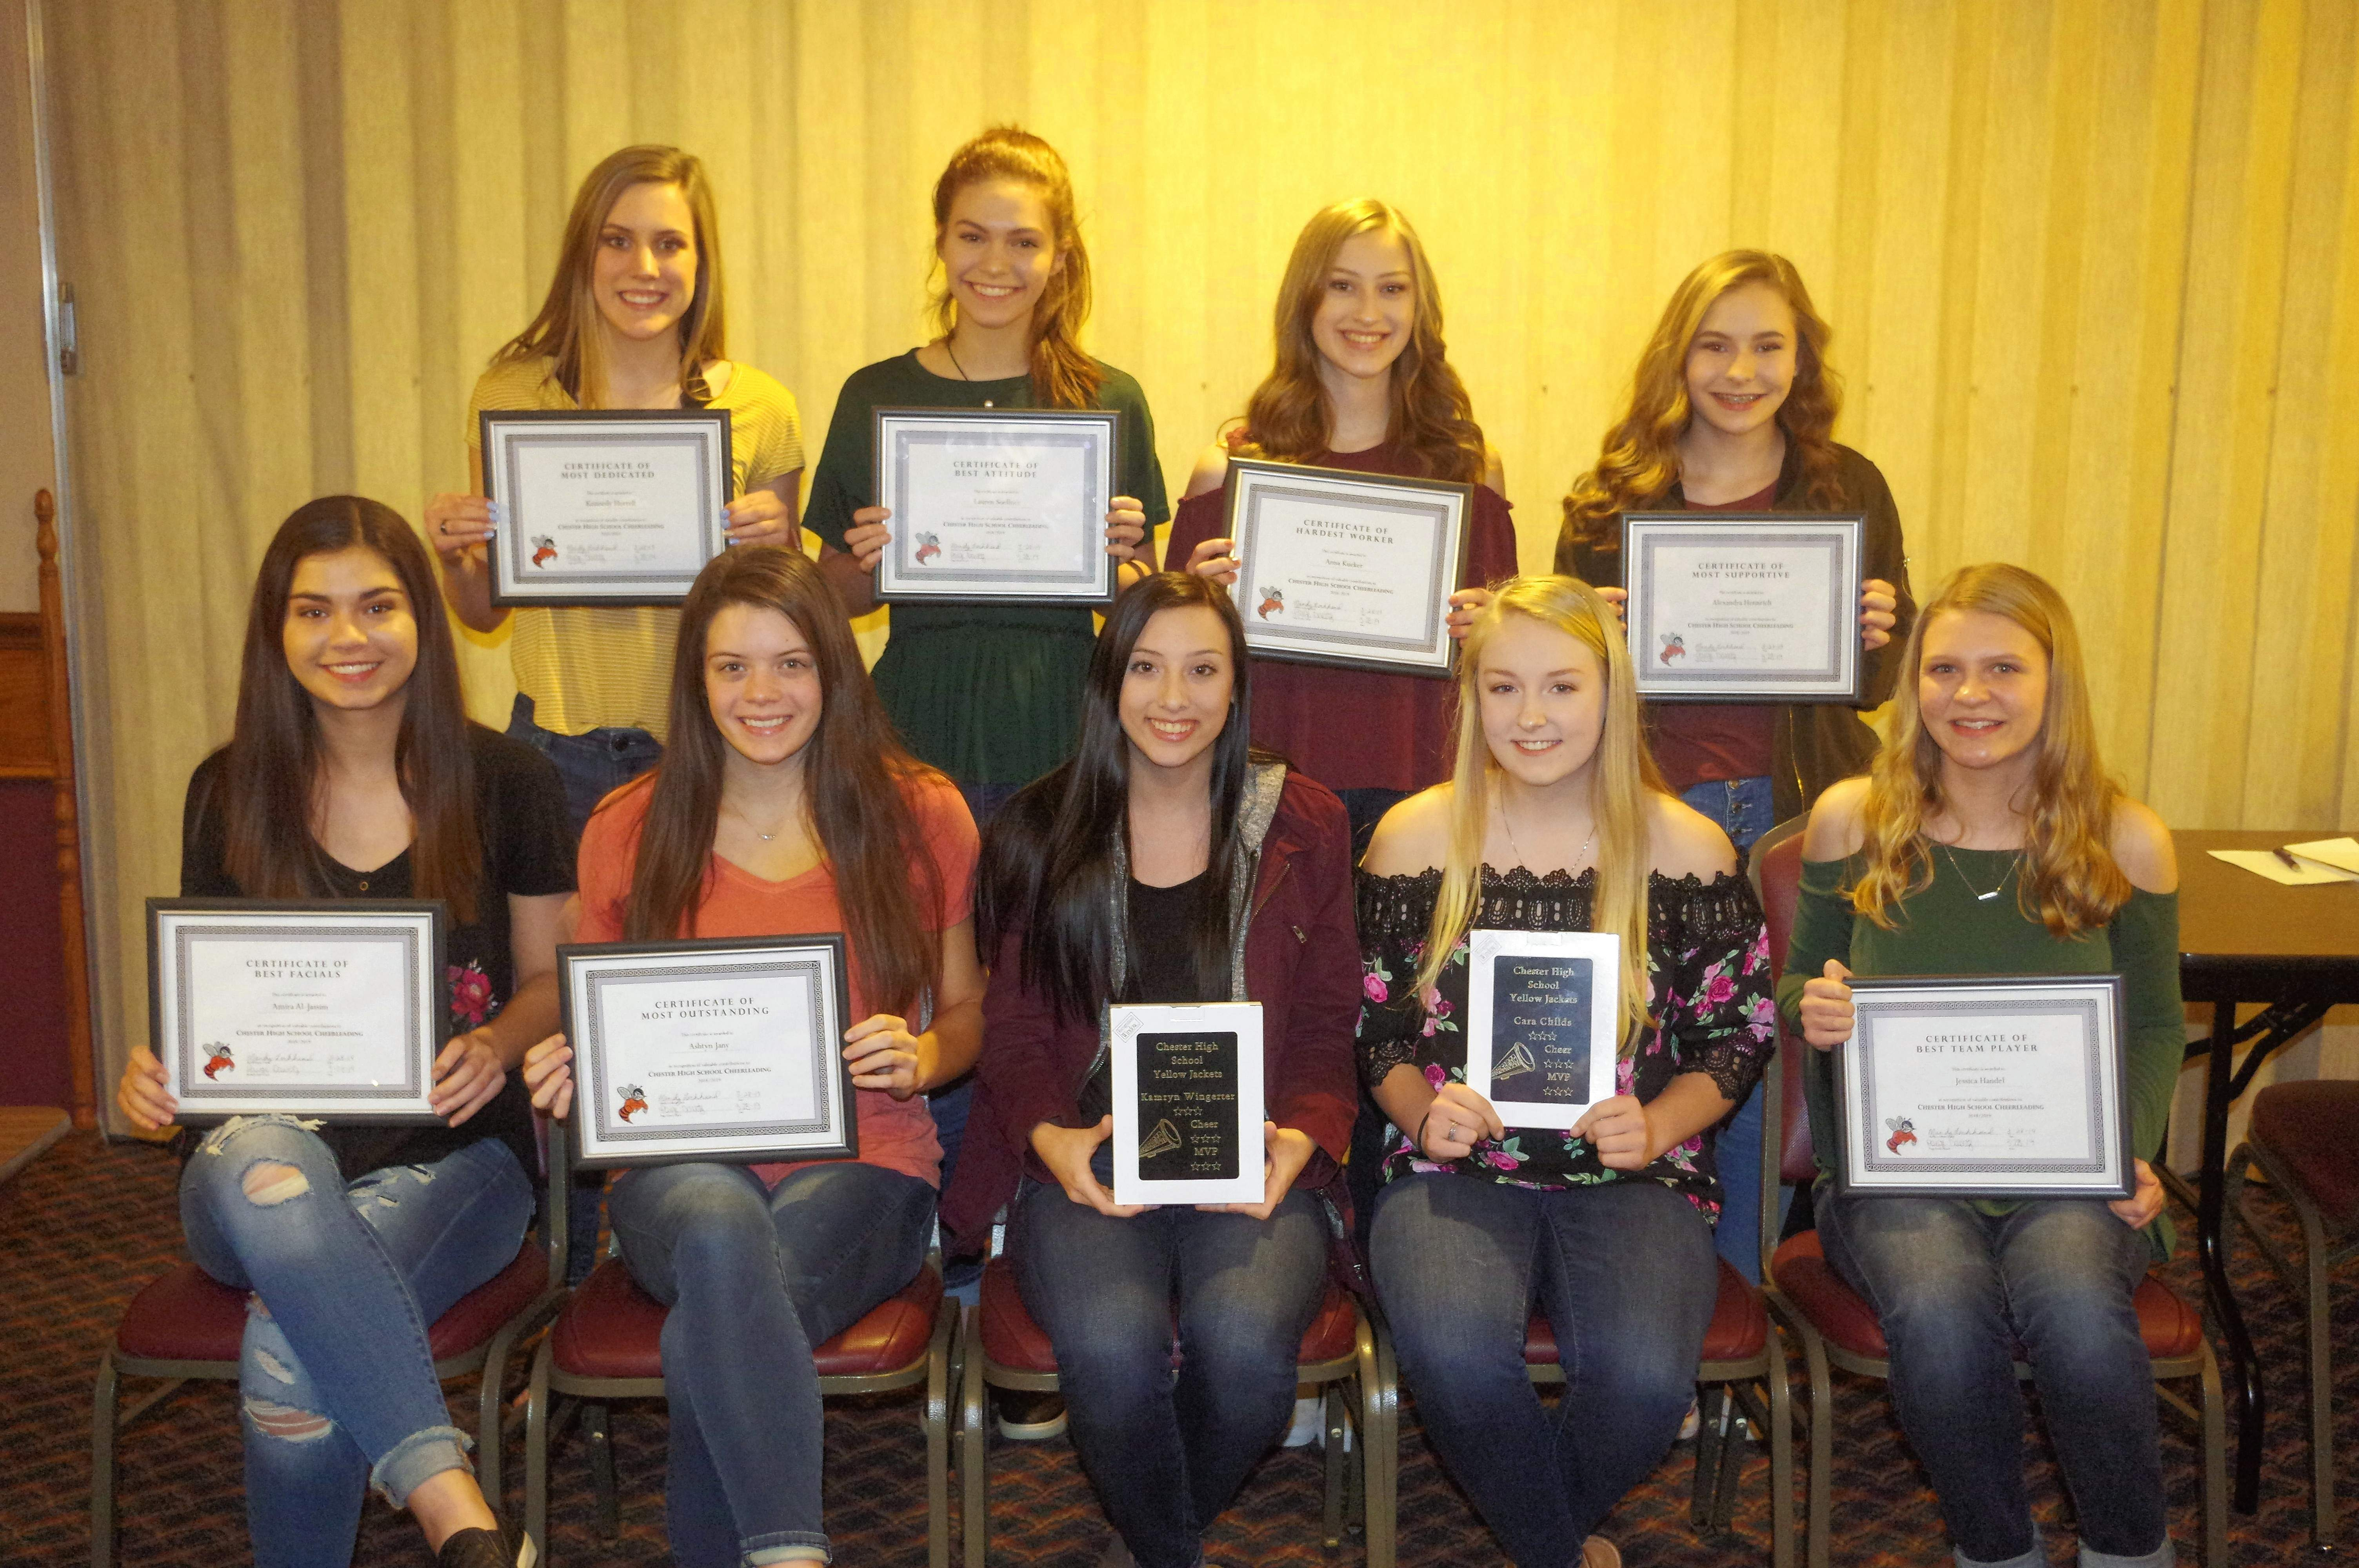 Chester High School cheerleaders pose with their awards. Back row, from left: Kennedy Herrell, Lauren Soellner, Anna Kueker, and Alex Hennrich. Front row, from left: Amira Al-Jassim, Ashtyn Jany, Kamryn Wingerter, Cara Childs and Jessica Handel. Not present, Melody Colonel and Adeline Blechle.